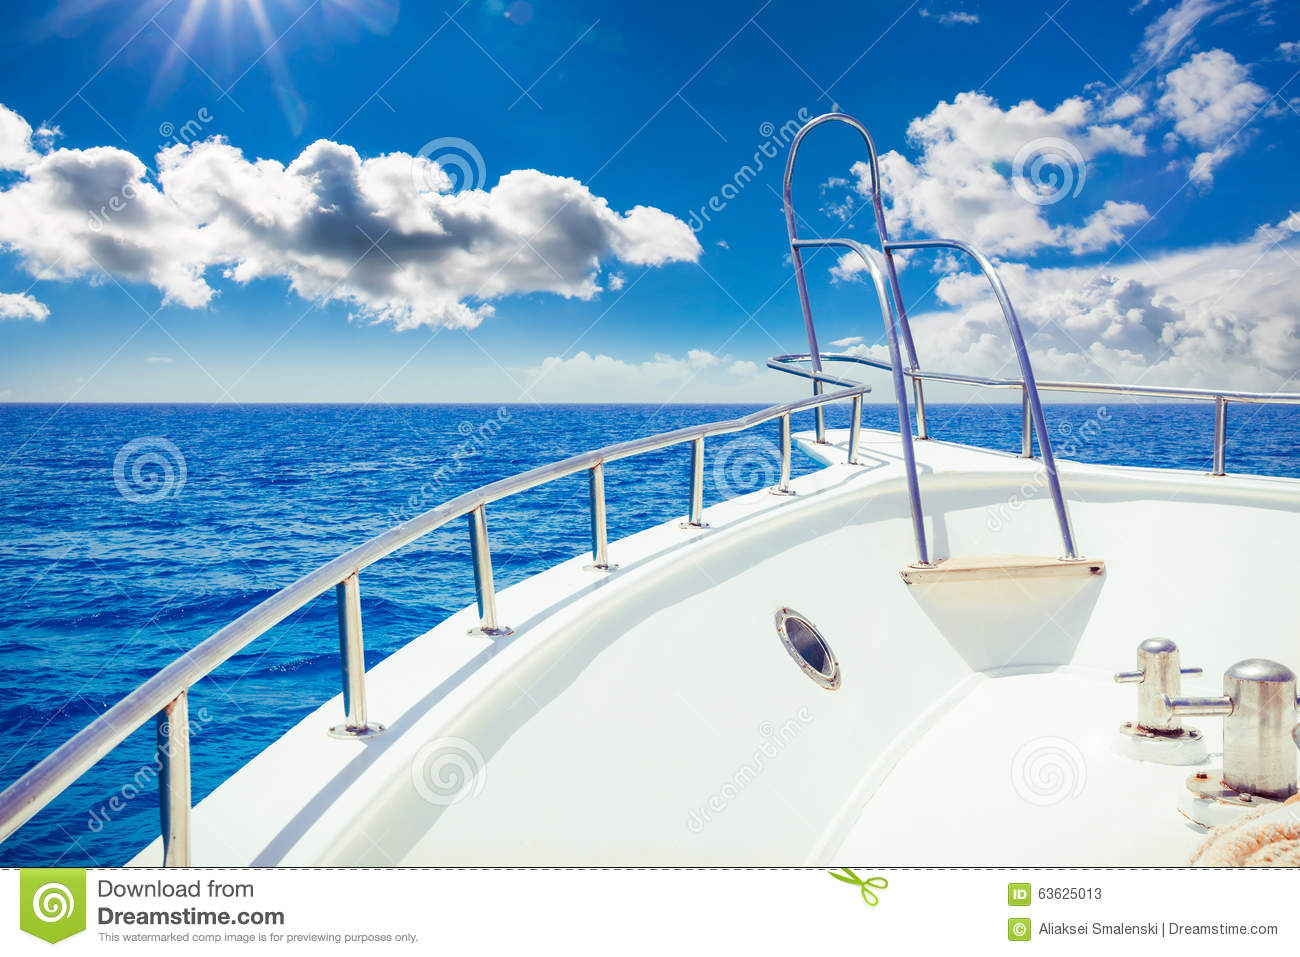 Vacation Travel Cruise And Leisure Concept Stock Photo  Image 63625013